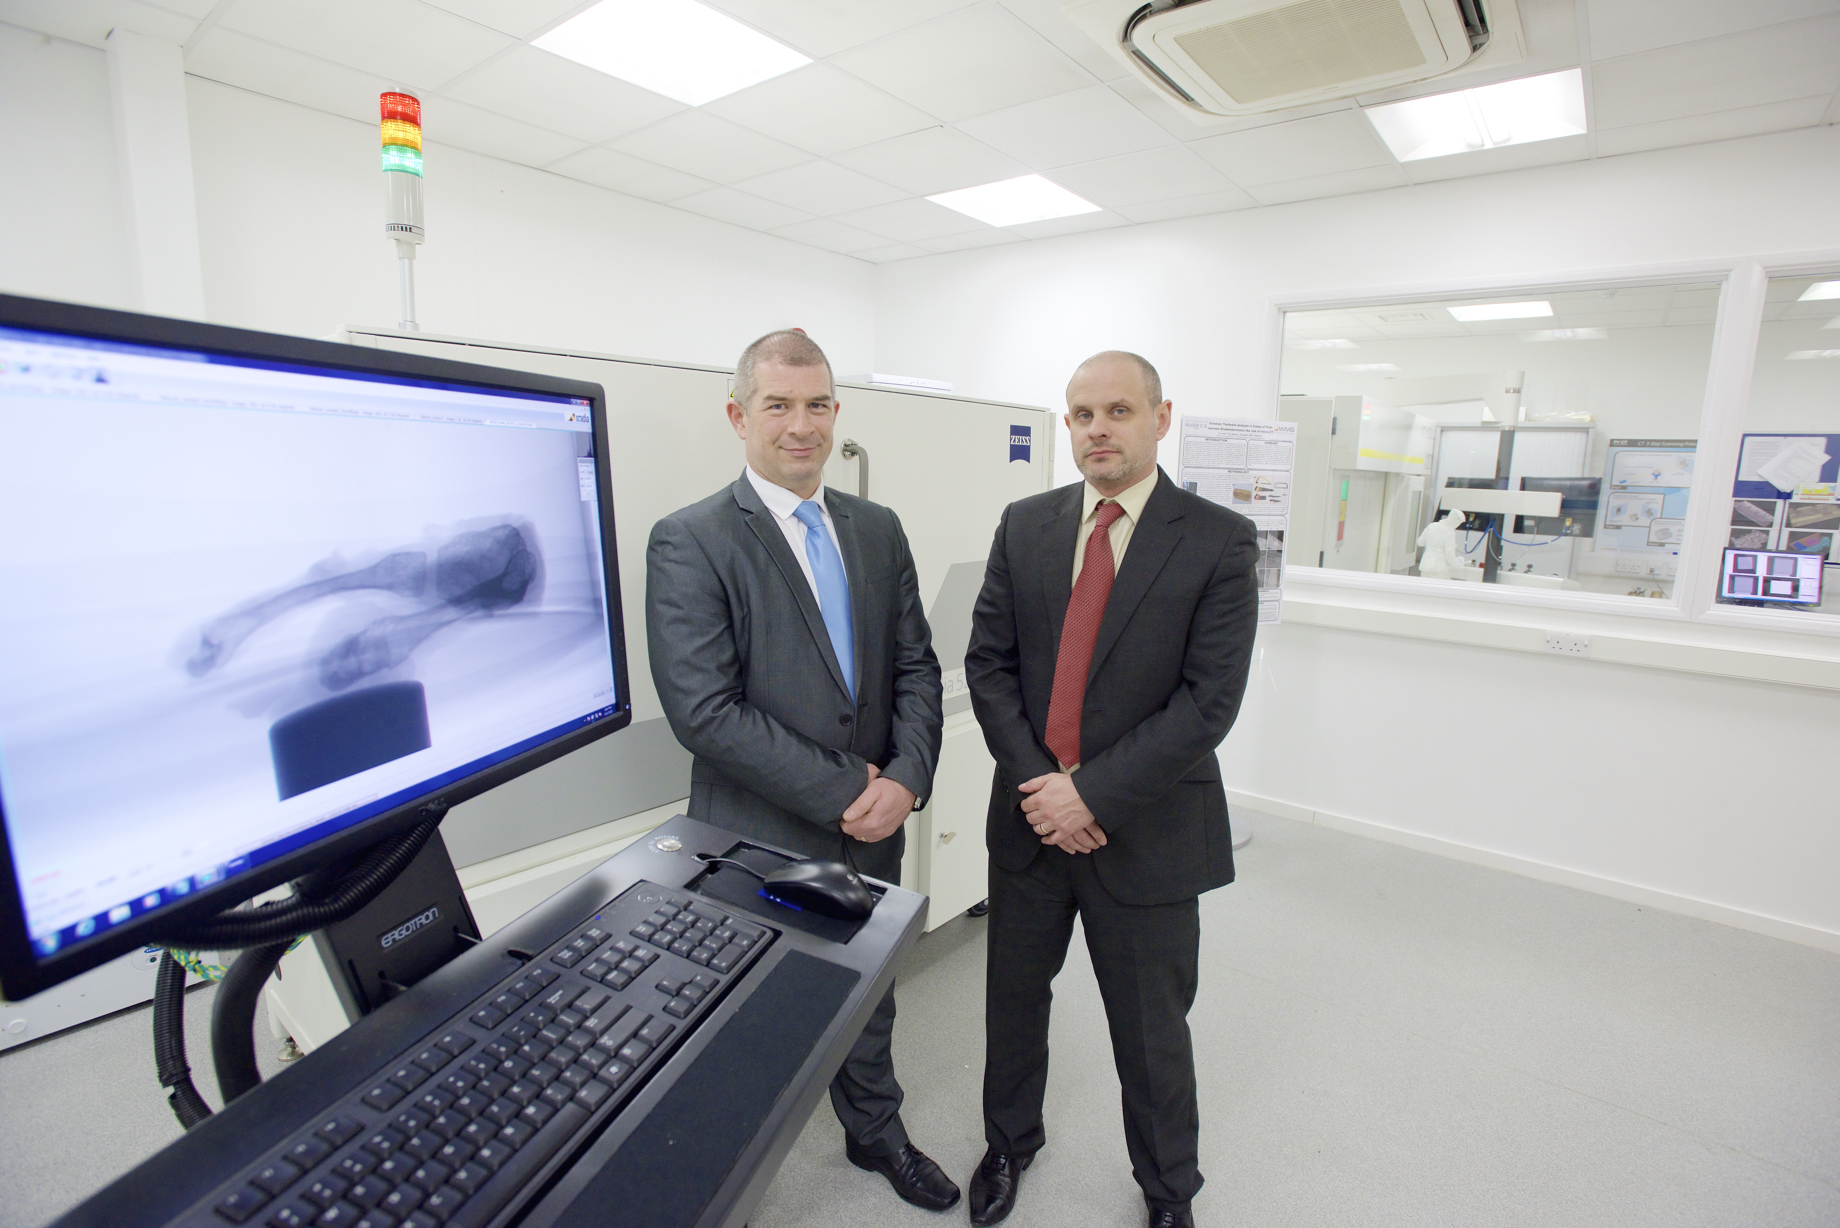 Detective Superintendent Mark Payne (left) and Professor Mark Williams (right) at WMG's metrology facility